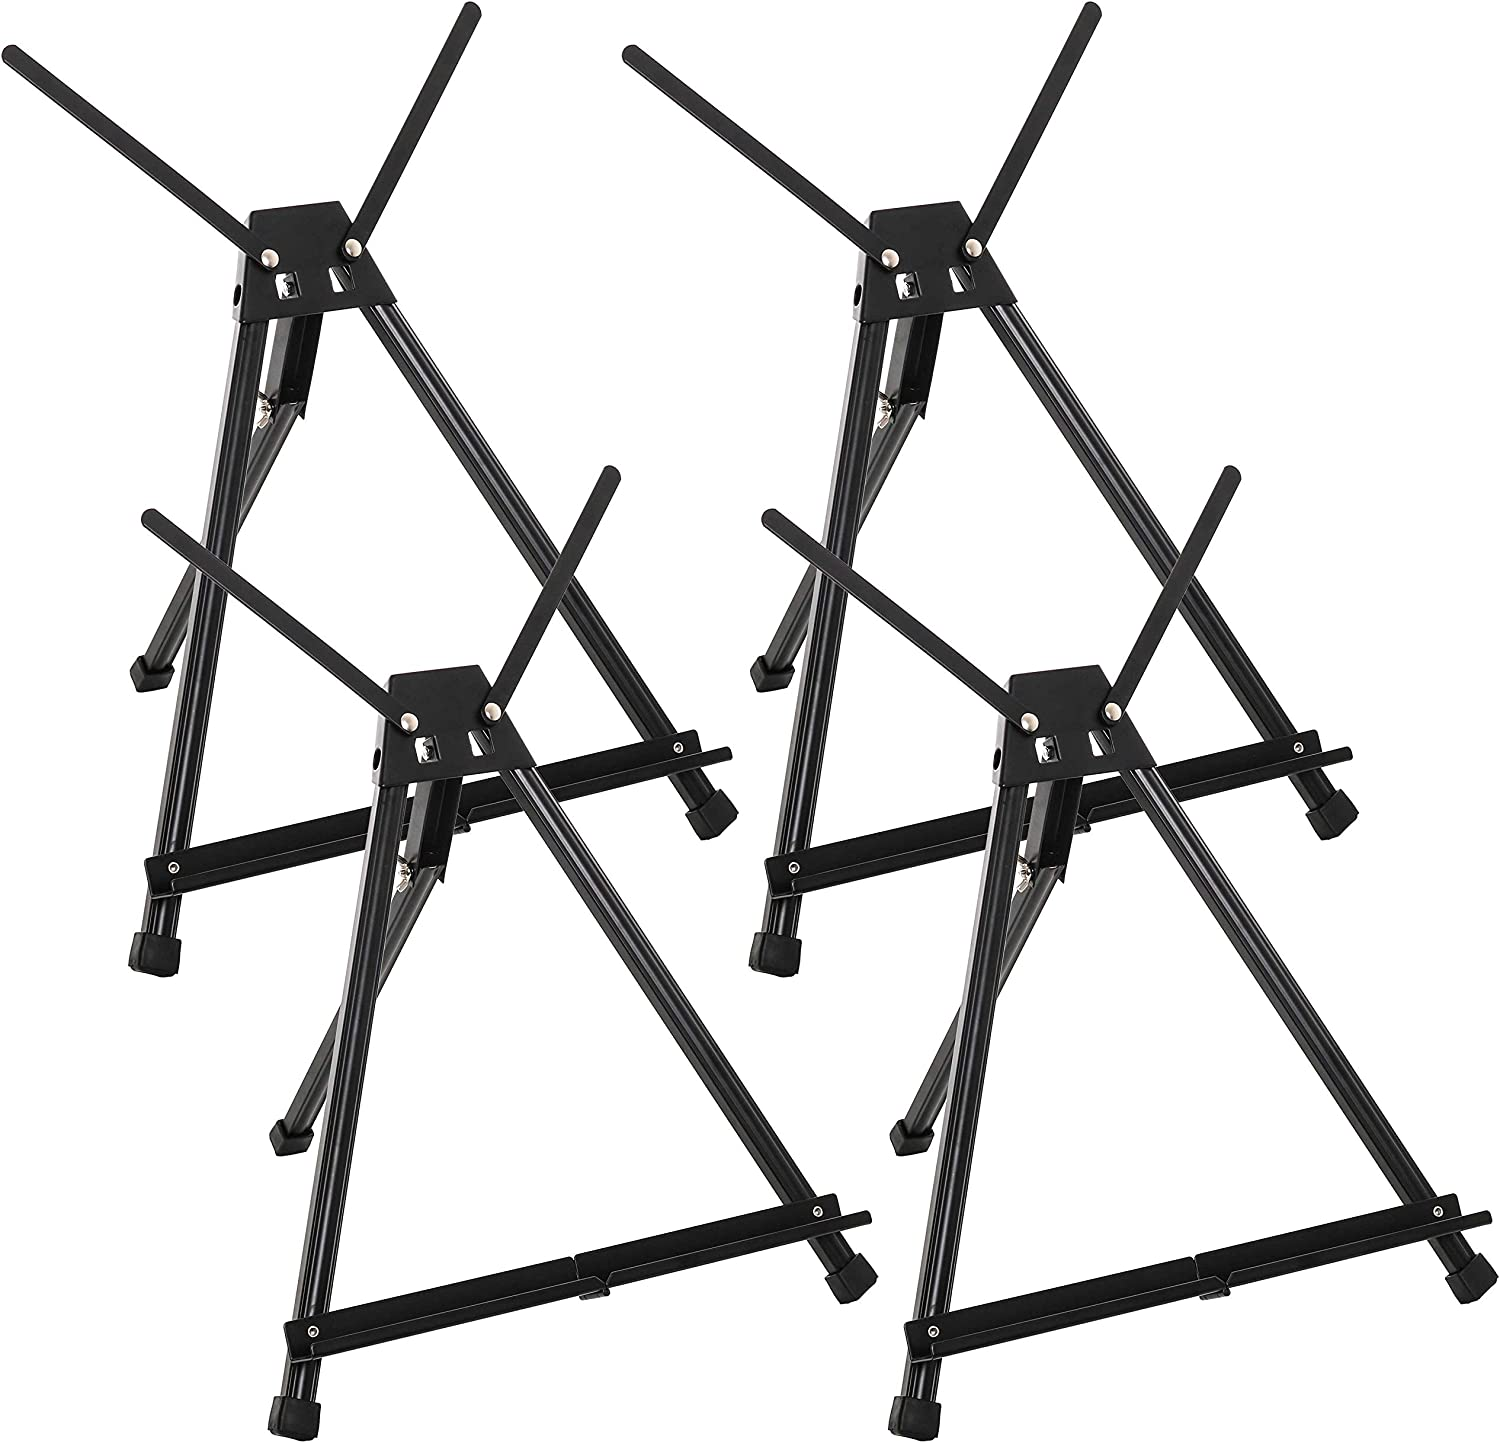 "U.S. Art Supply 15"" to 21"" High Adjustable Black Aluminum Tabletop Display Easel (Pack of 4) - Portable Artist Tripod Stand with Extension Arm Wings, Folding Frame - Holds Canvas Paintings Books Signs"